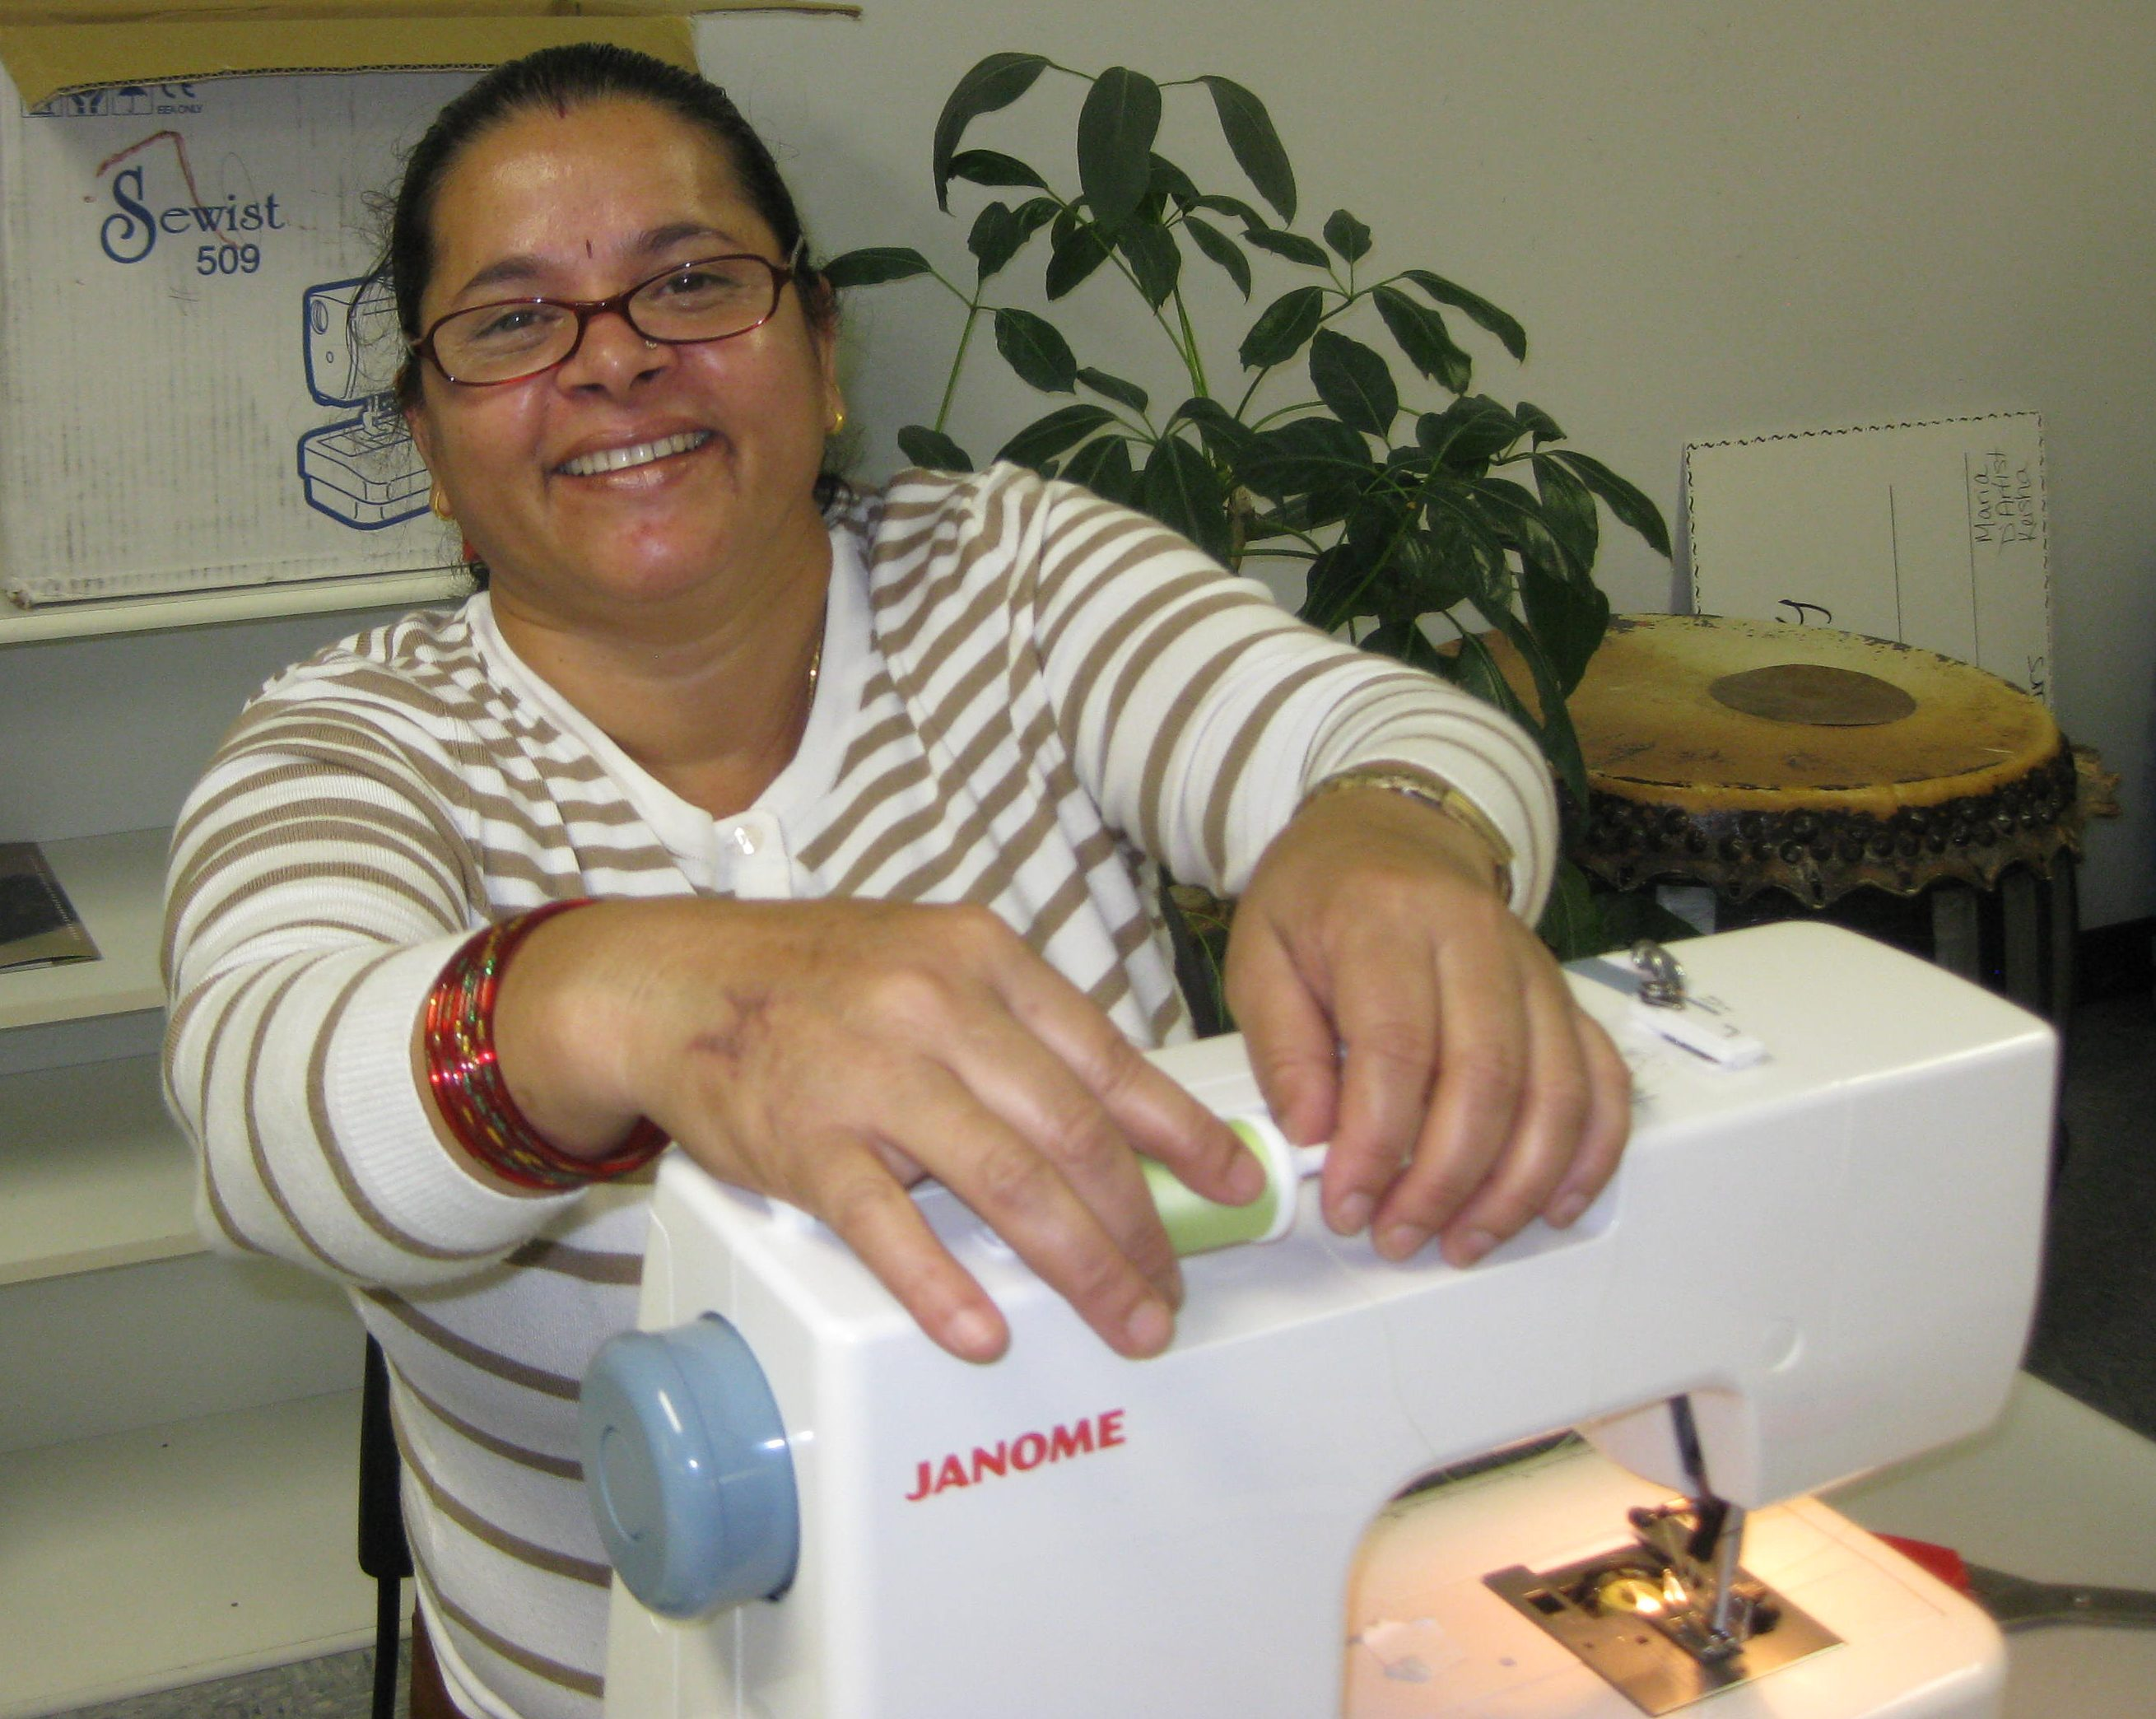 Sewing class - threading a machine